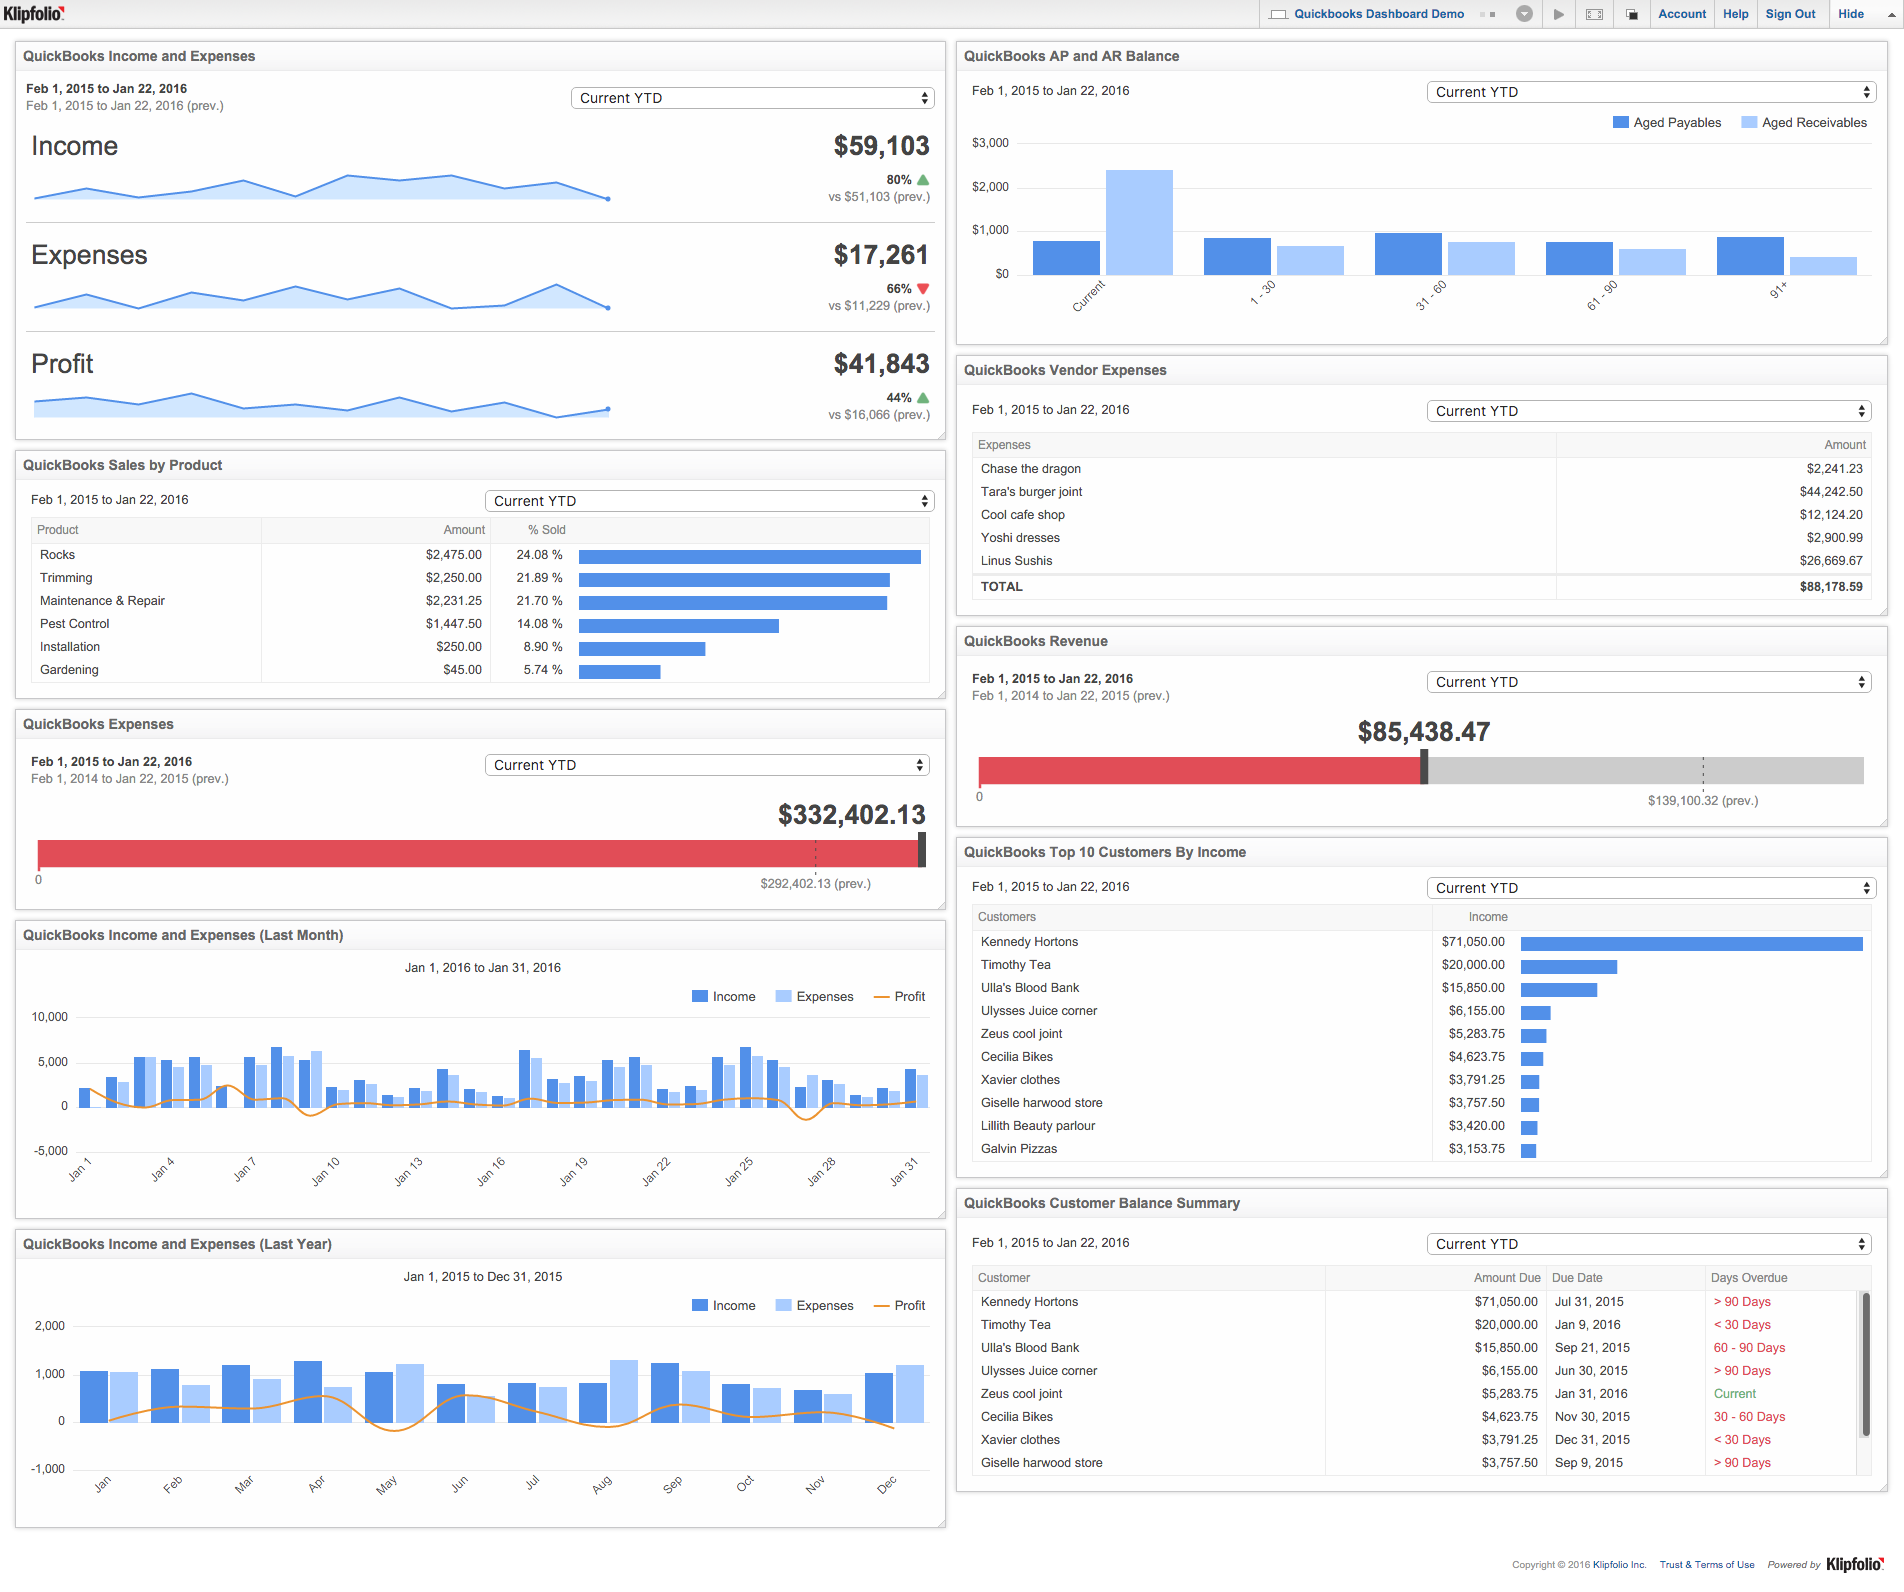 6 quickbooks metrics every small business needs to track on their accounting dashboard